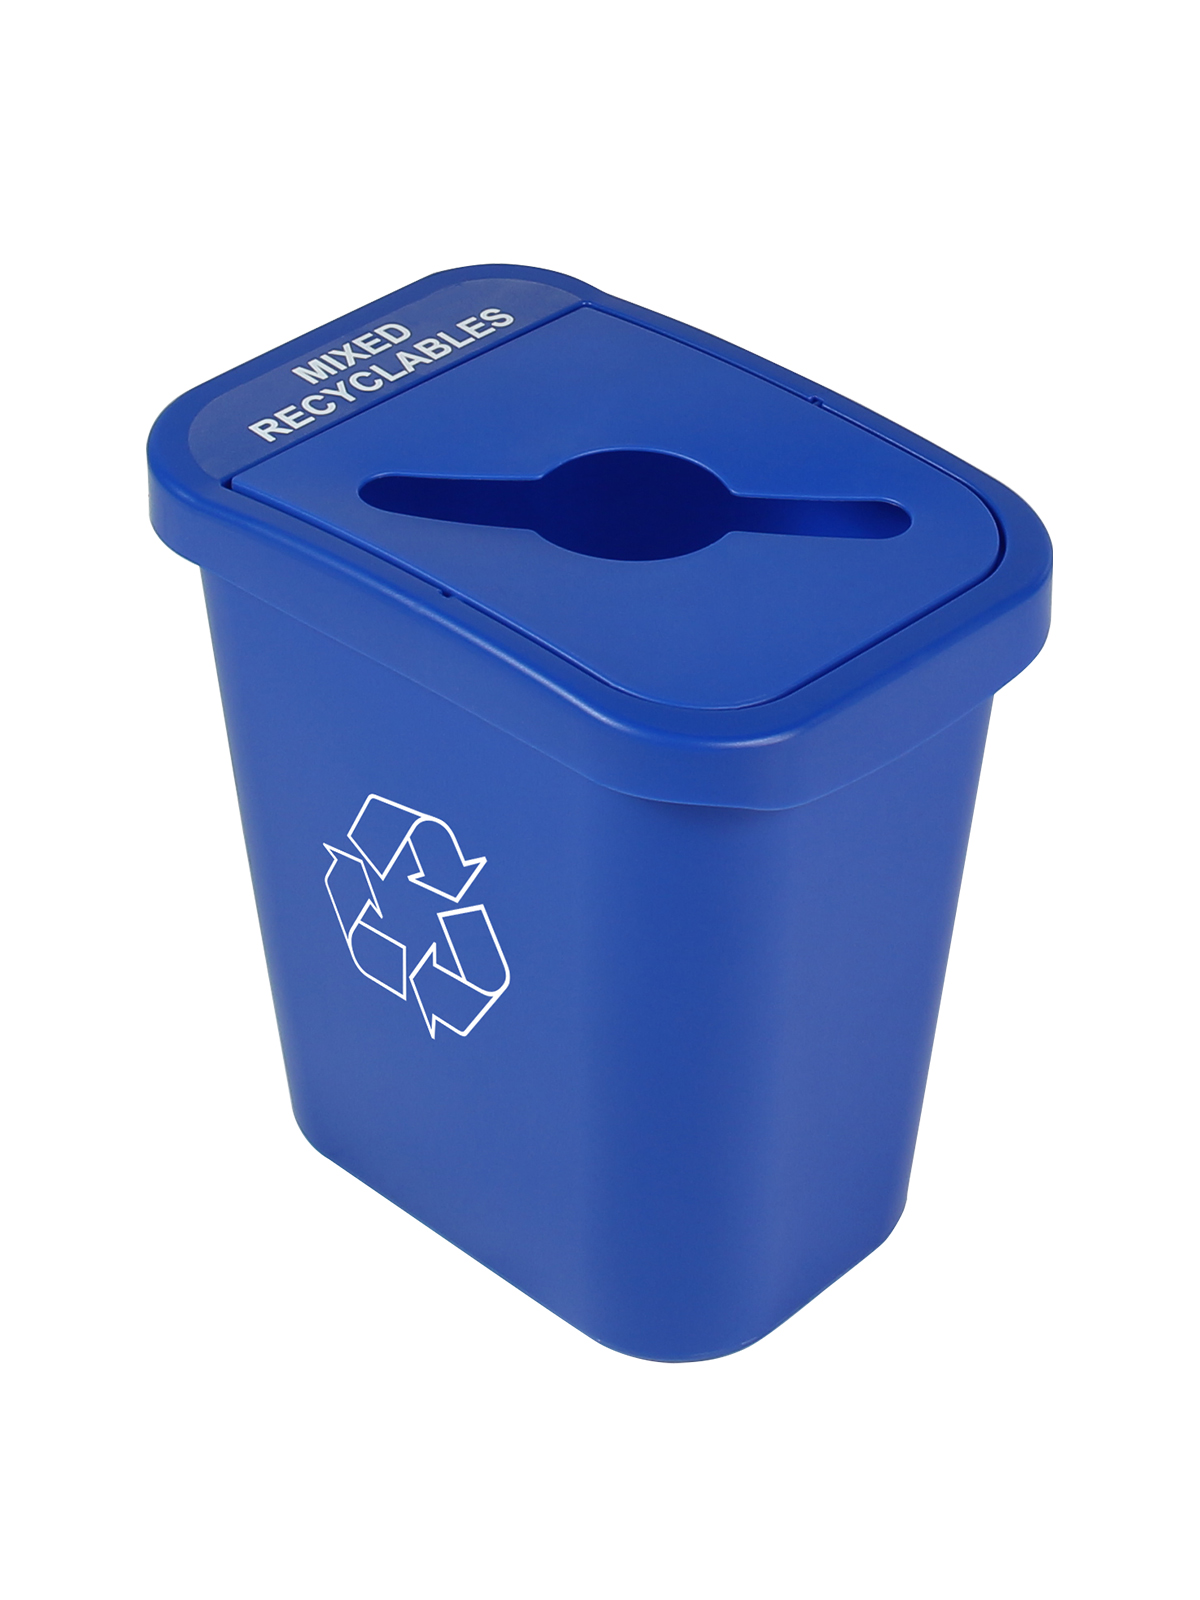 BILLI BOX - Single - 7 G - Mixed Recyclables - Mixed - Blue title=